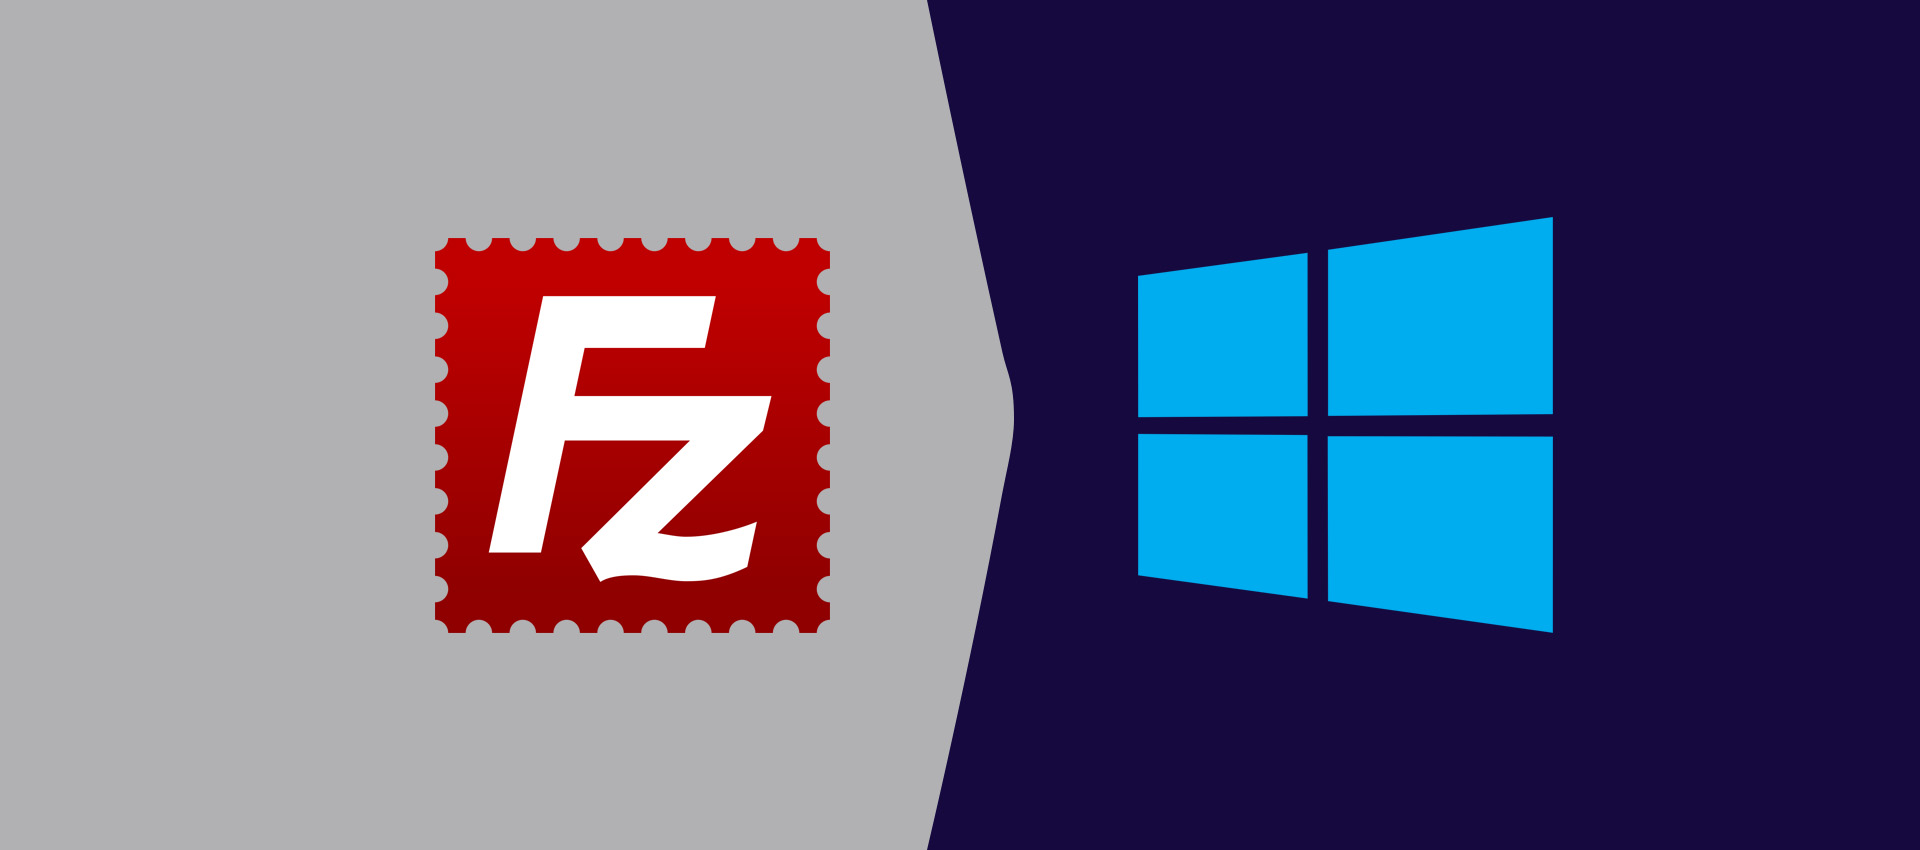 How To Install FileZilla FTP Client On Windows 10